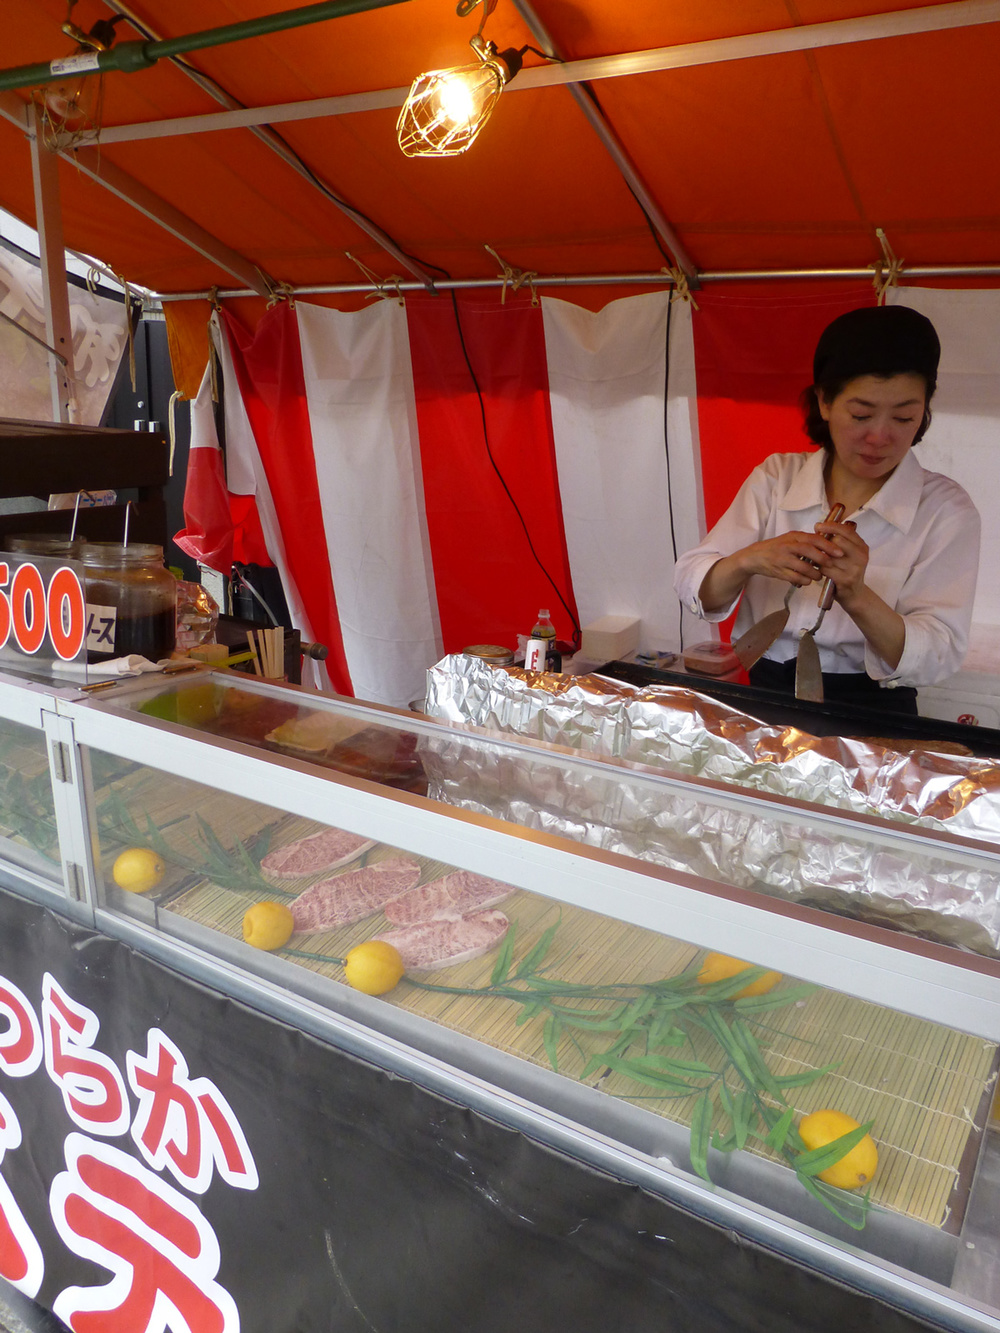 The wagyu steak stall